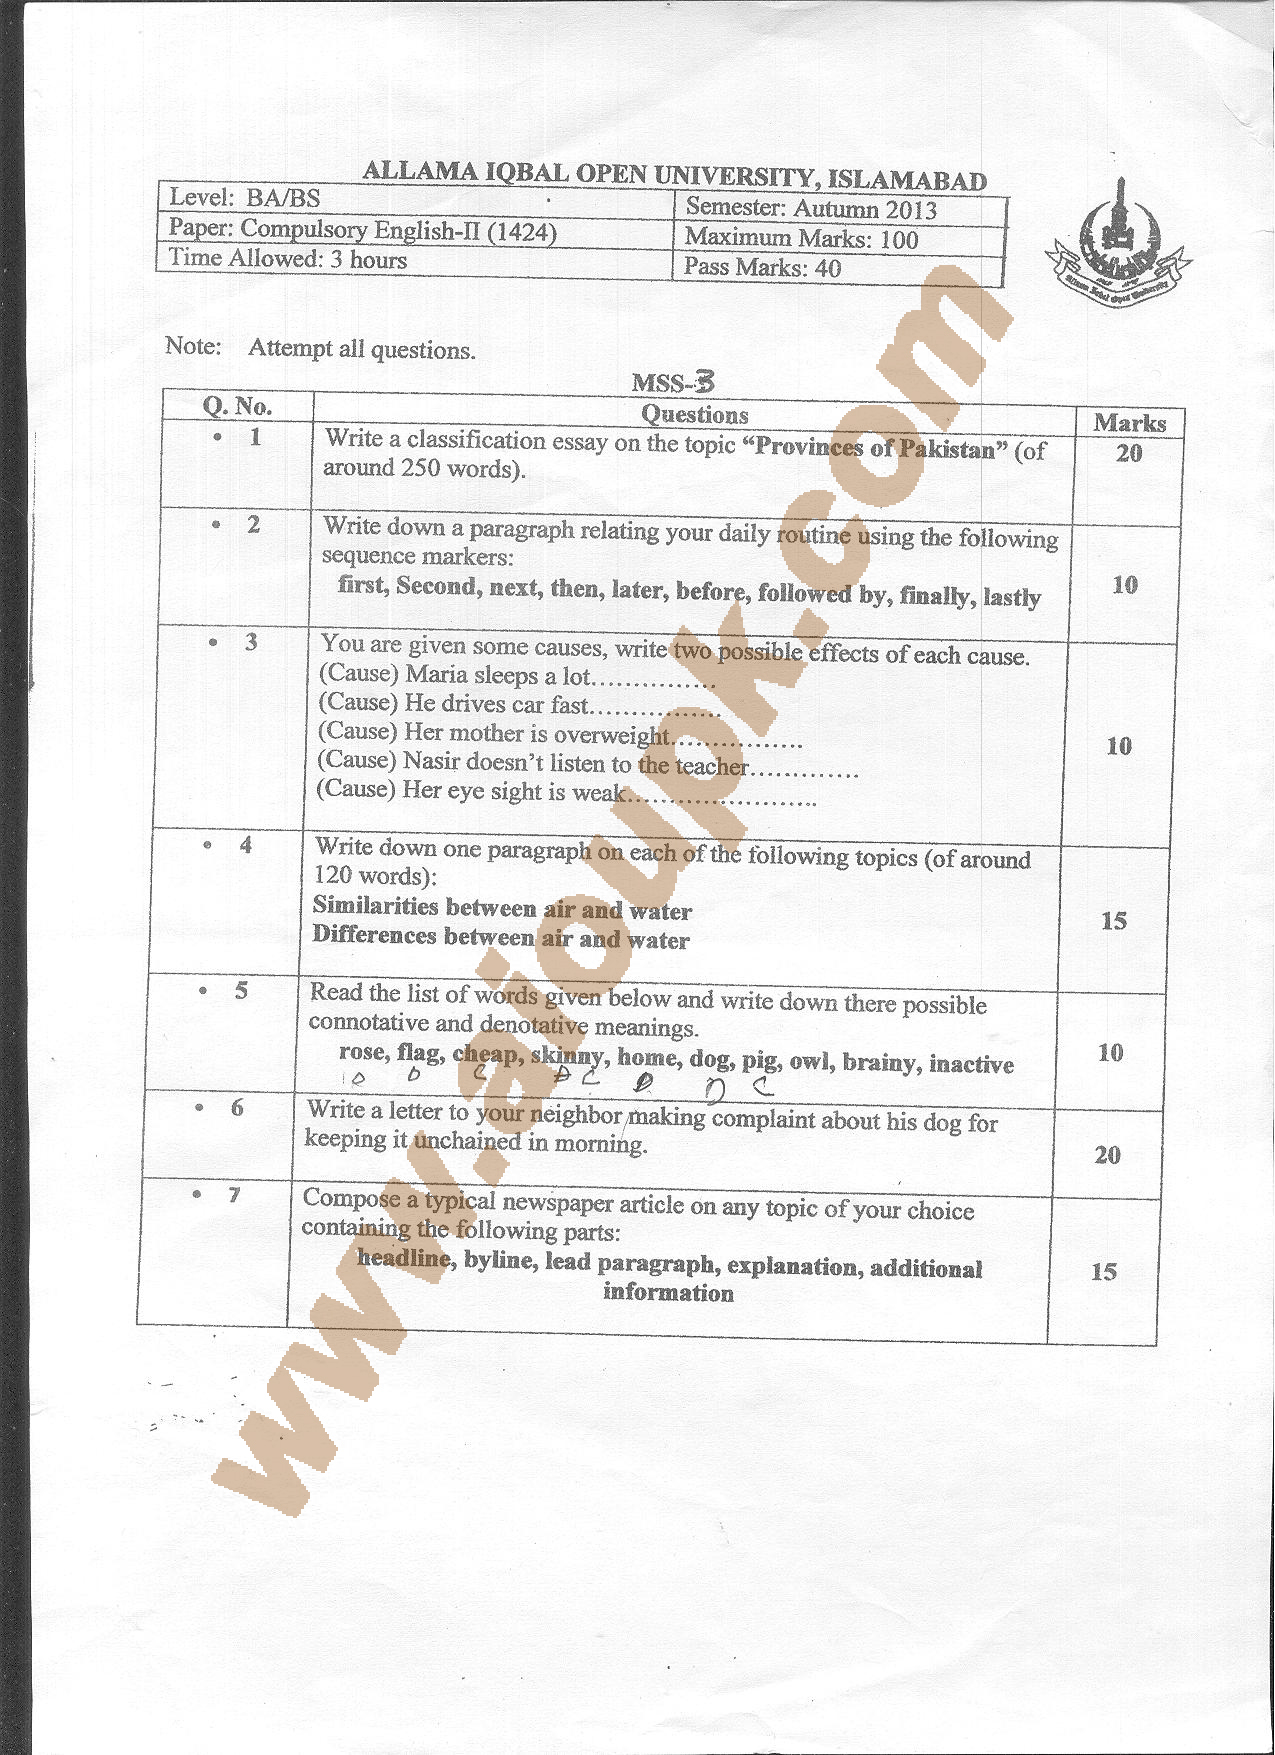 english ii code 1424 ba bs aiou old paper spring 2013 2014 aiou old paper code 1424 compulsory english ii